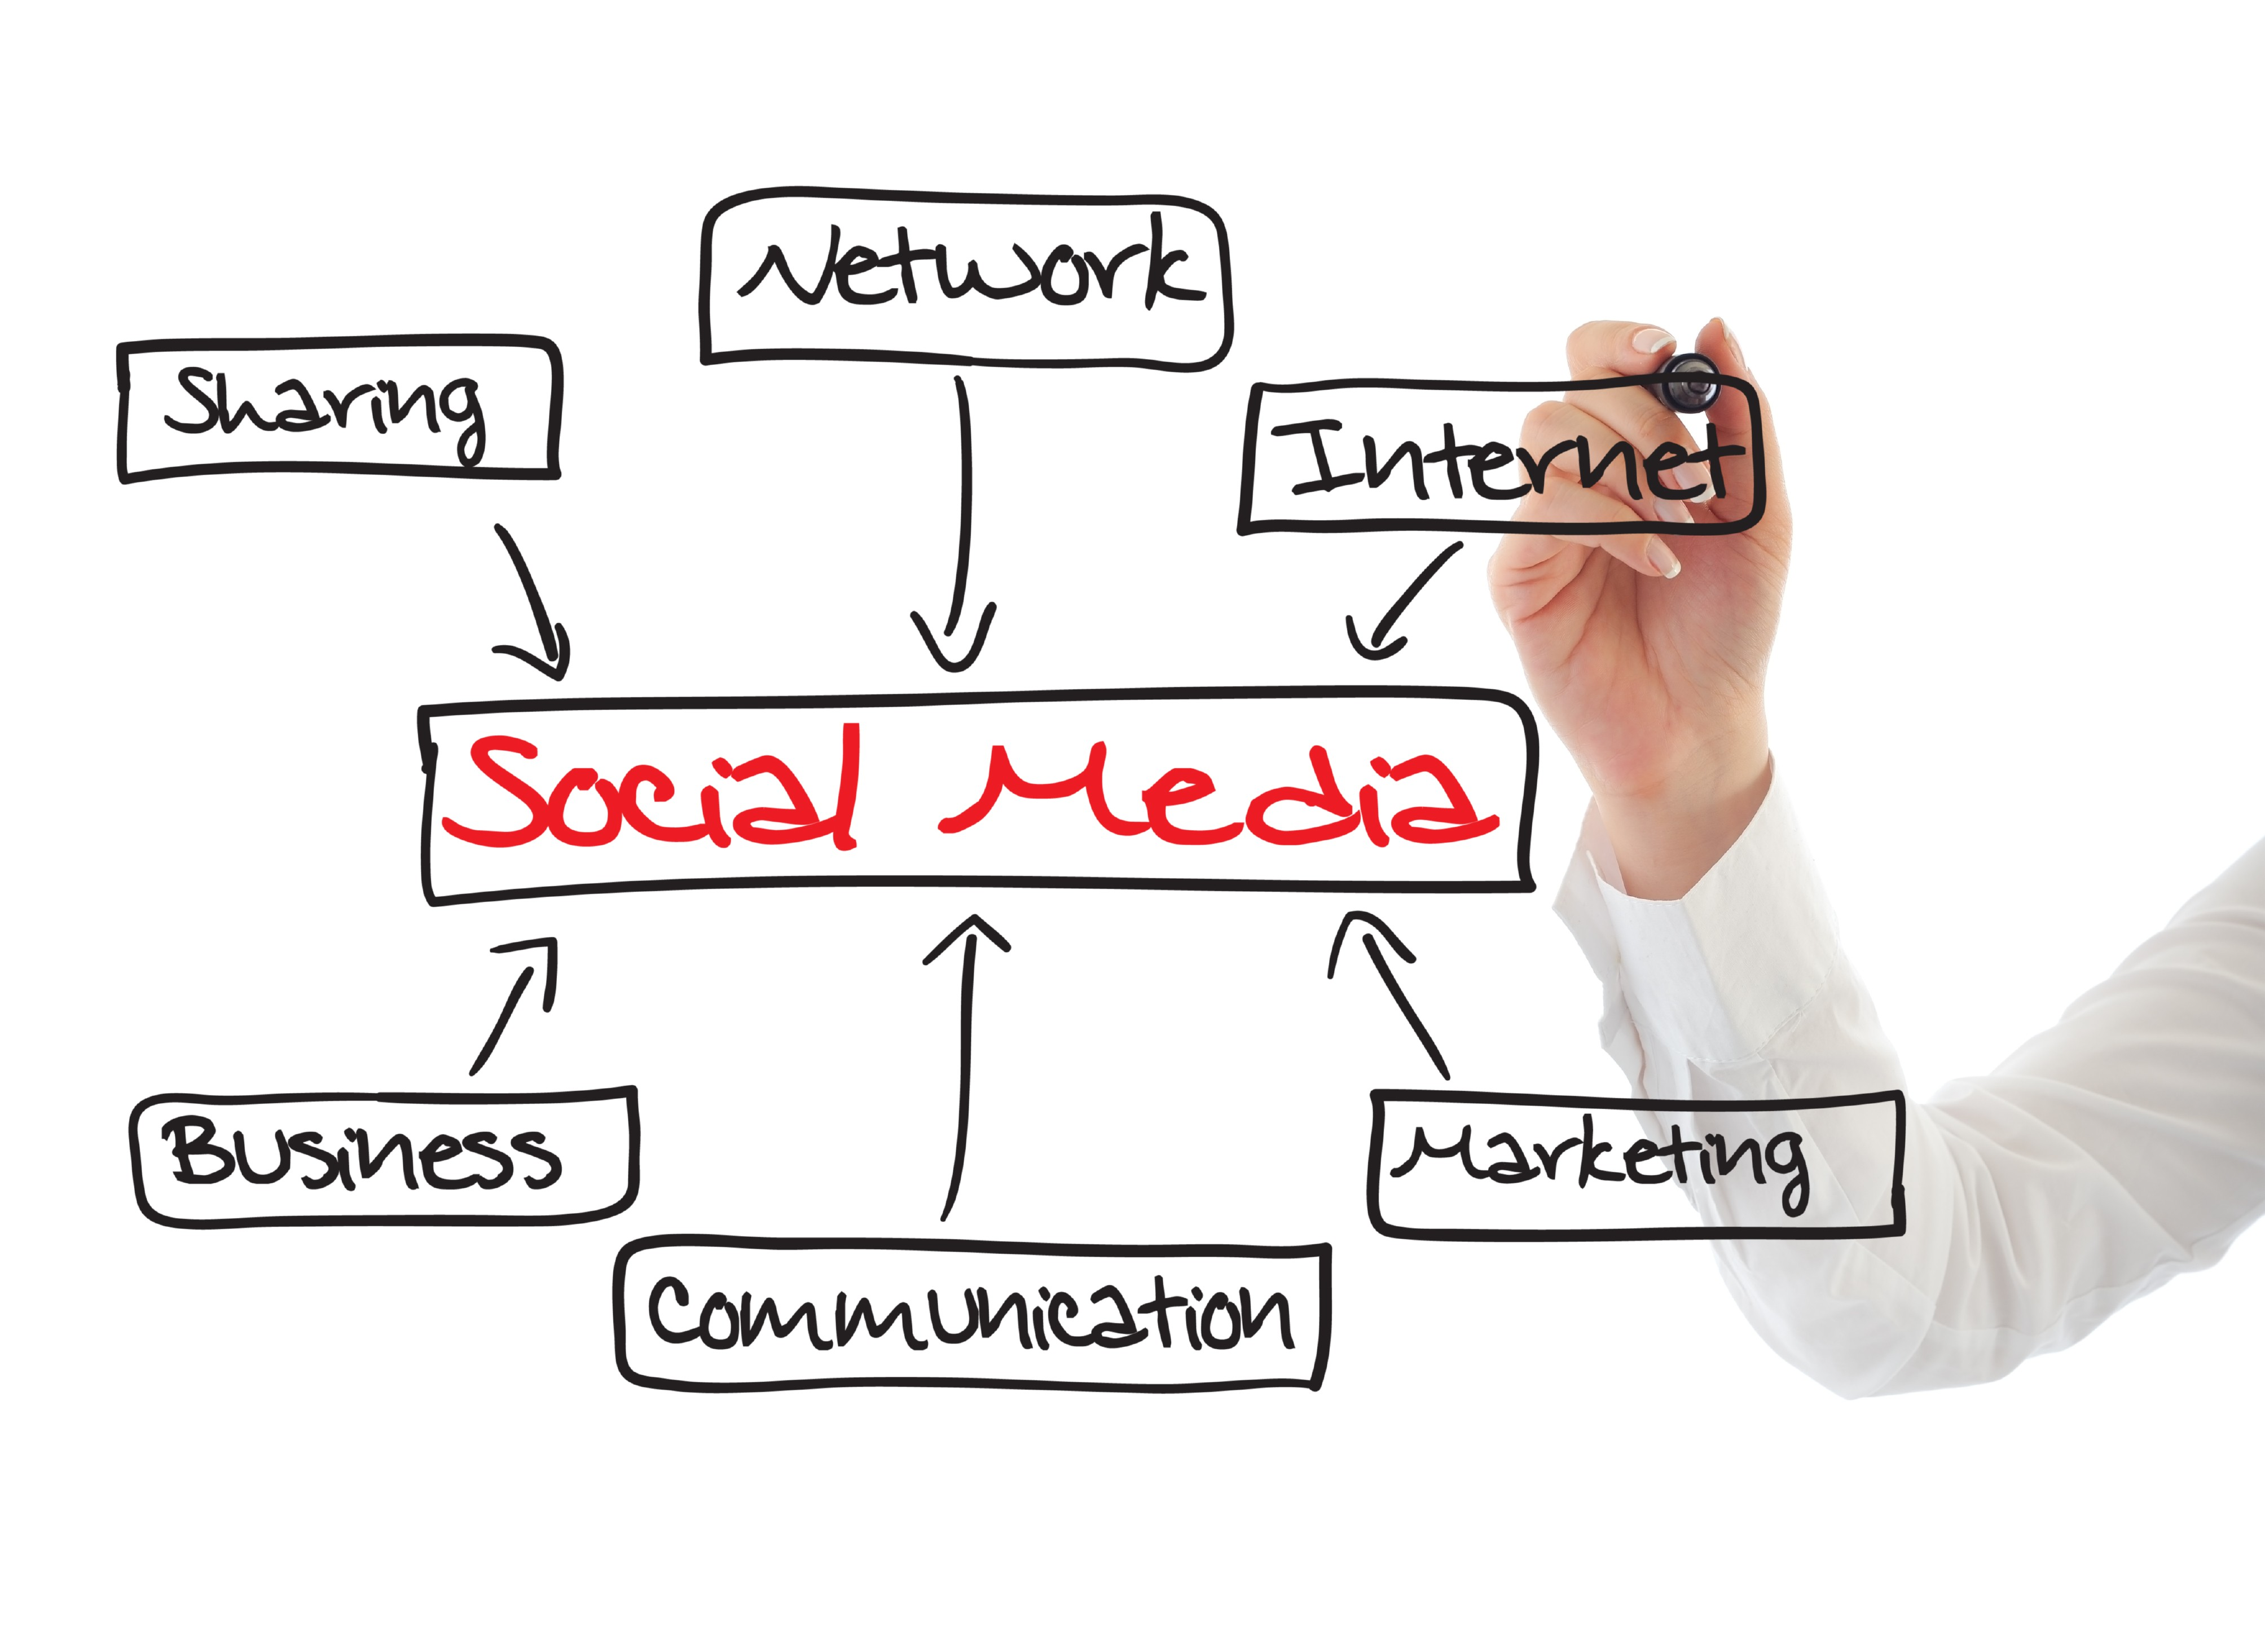 4 Keys to a Great Social Media Strategy